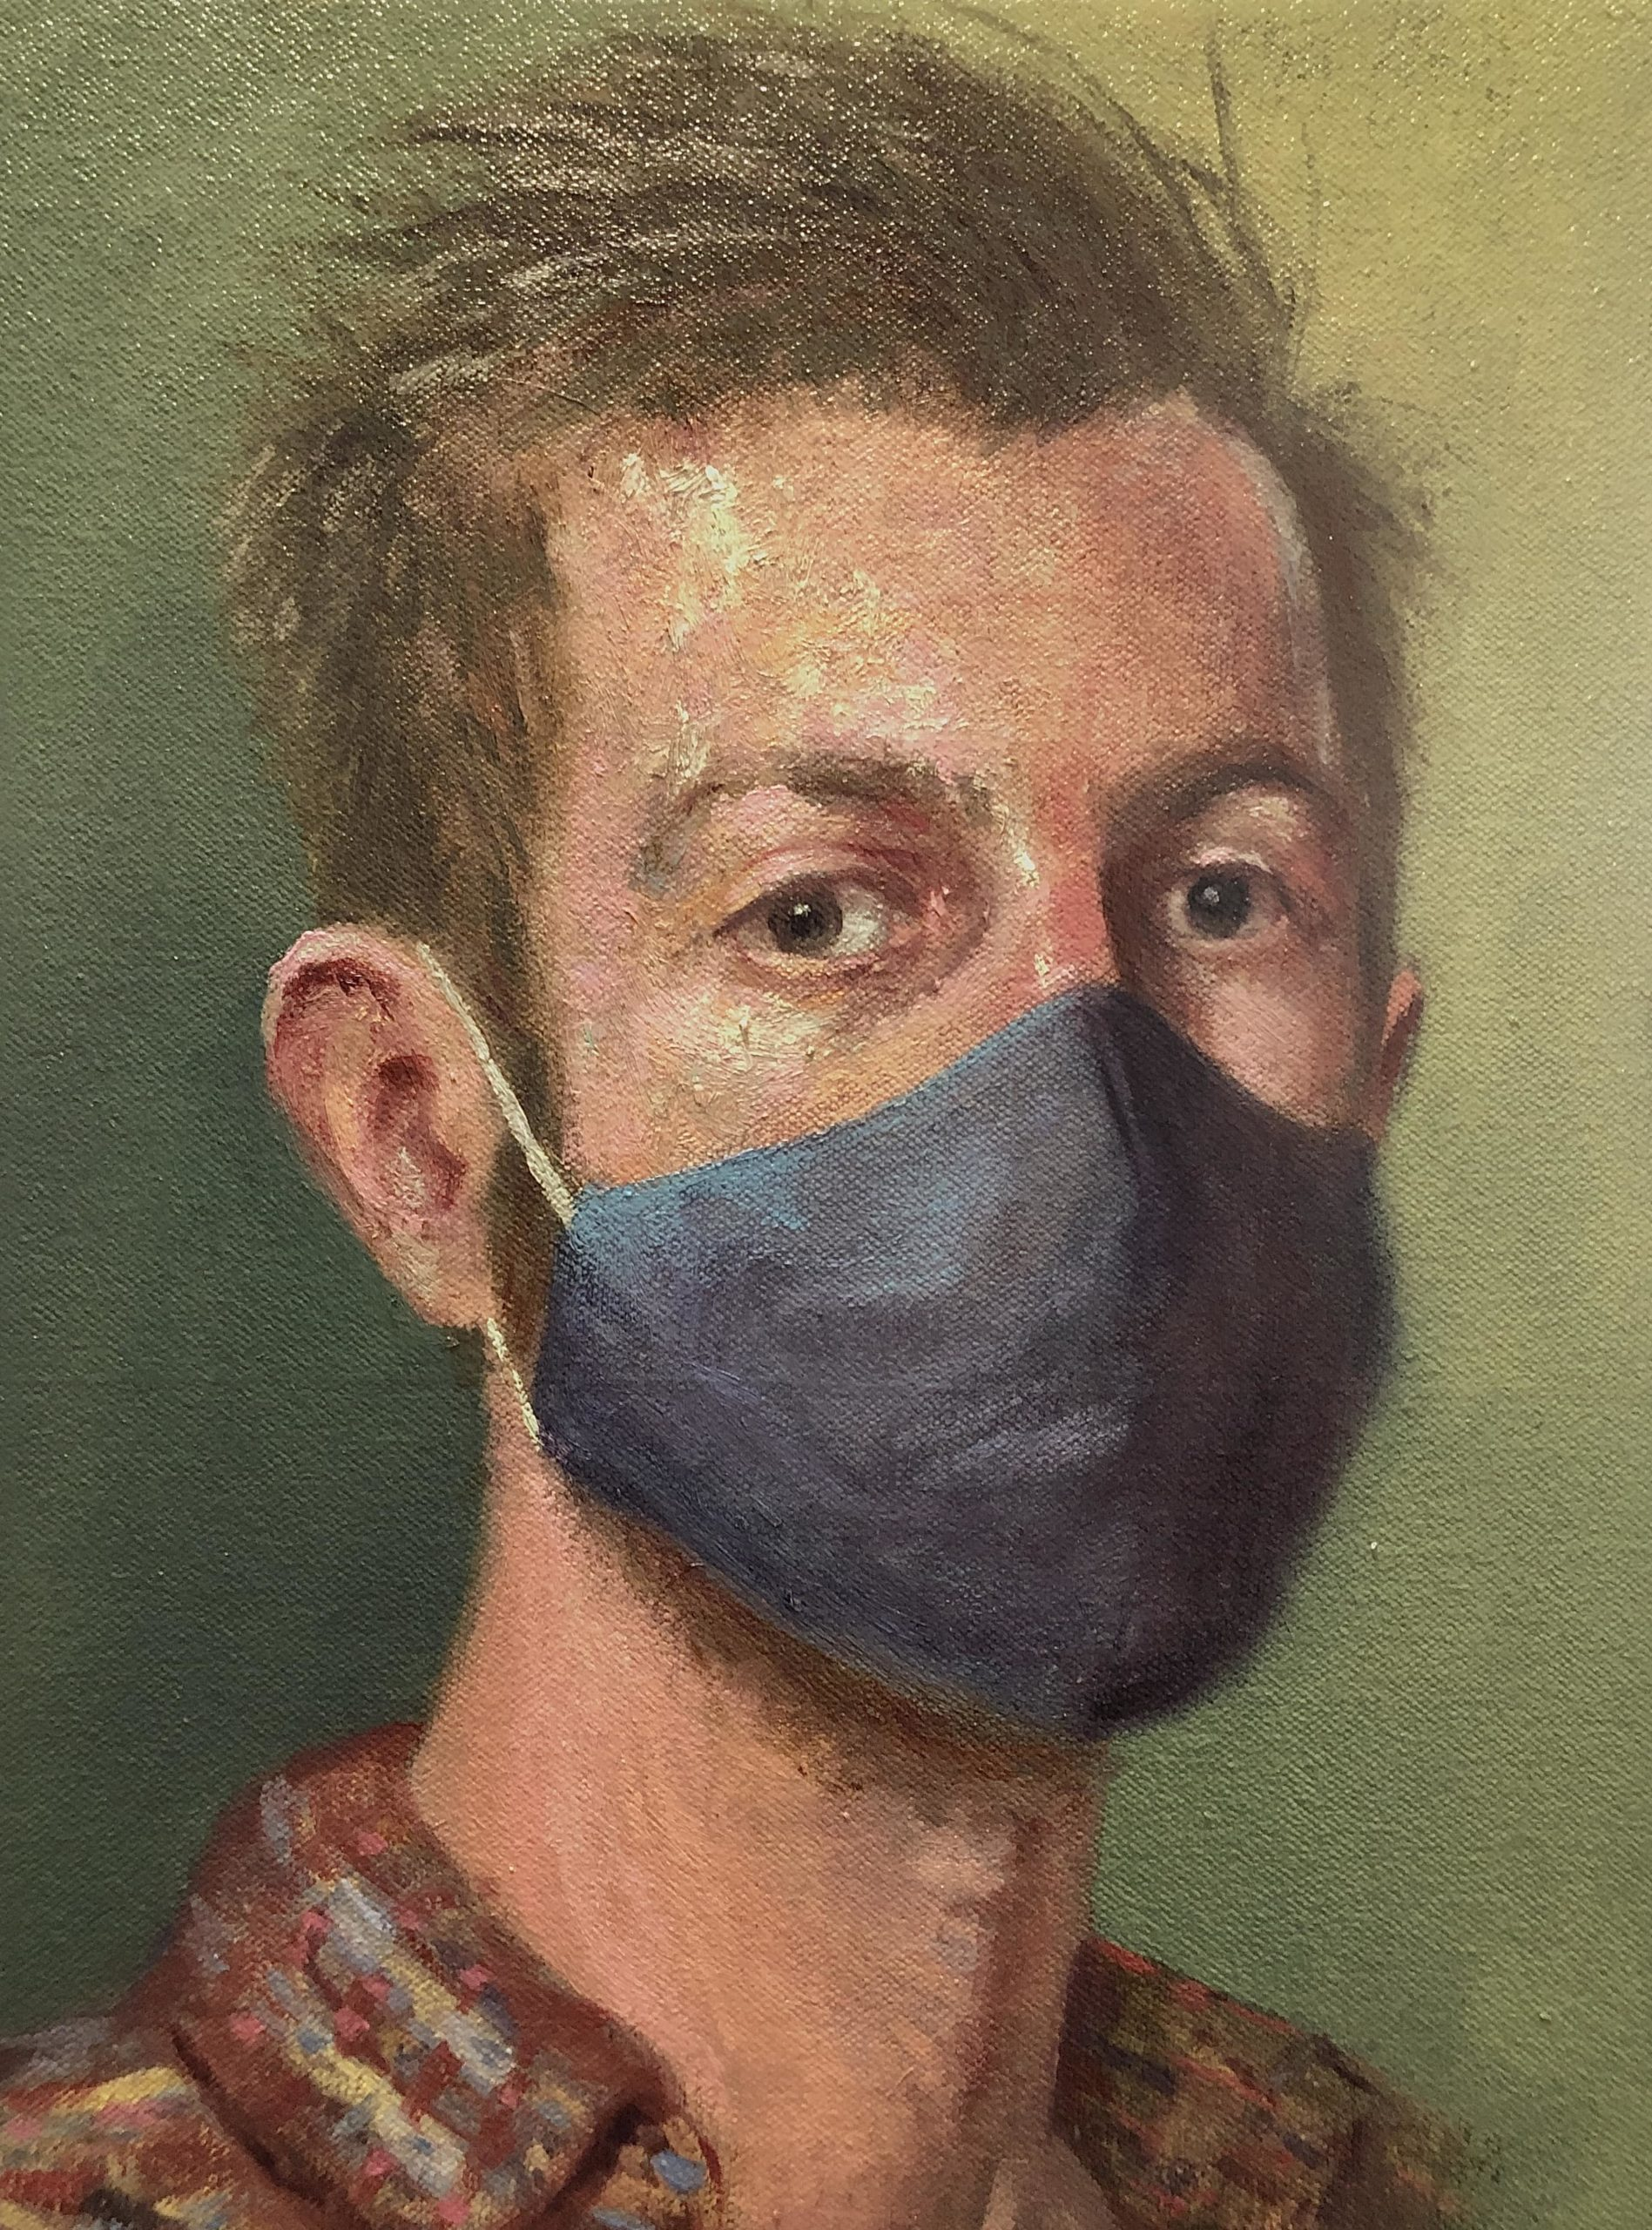 SELF PORTRAIT WITH MASK by JOHN JAMESON